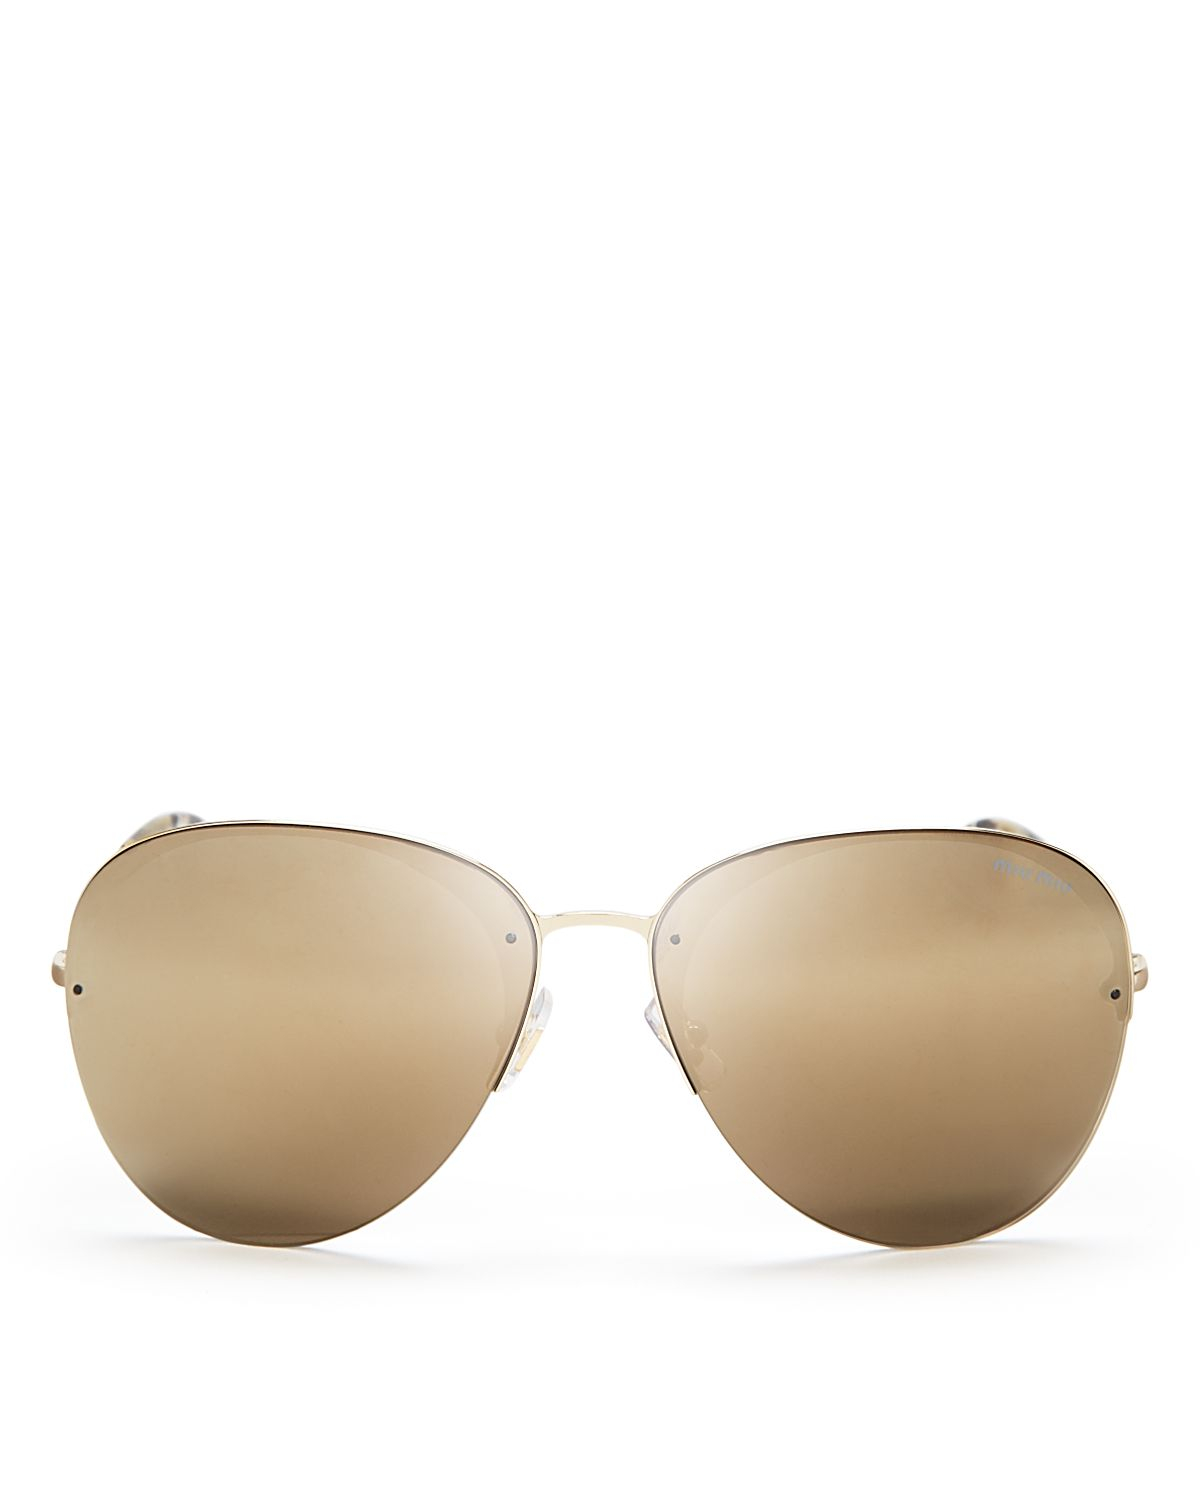 8fad41347 Gallery. Previously sold at: Bloomingdale's · Women's Mirrored Sunglasses